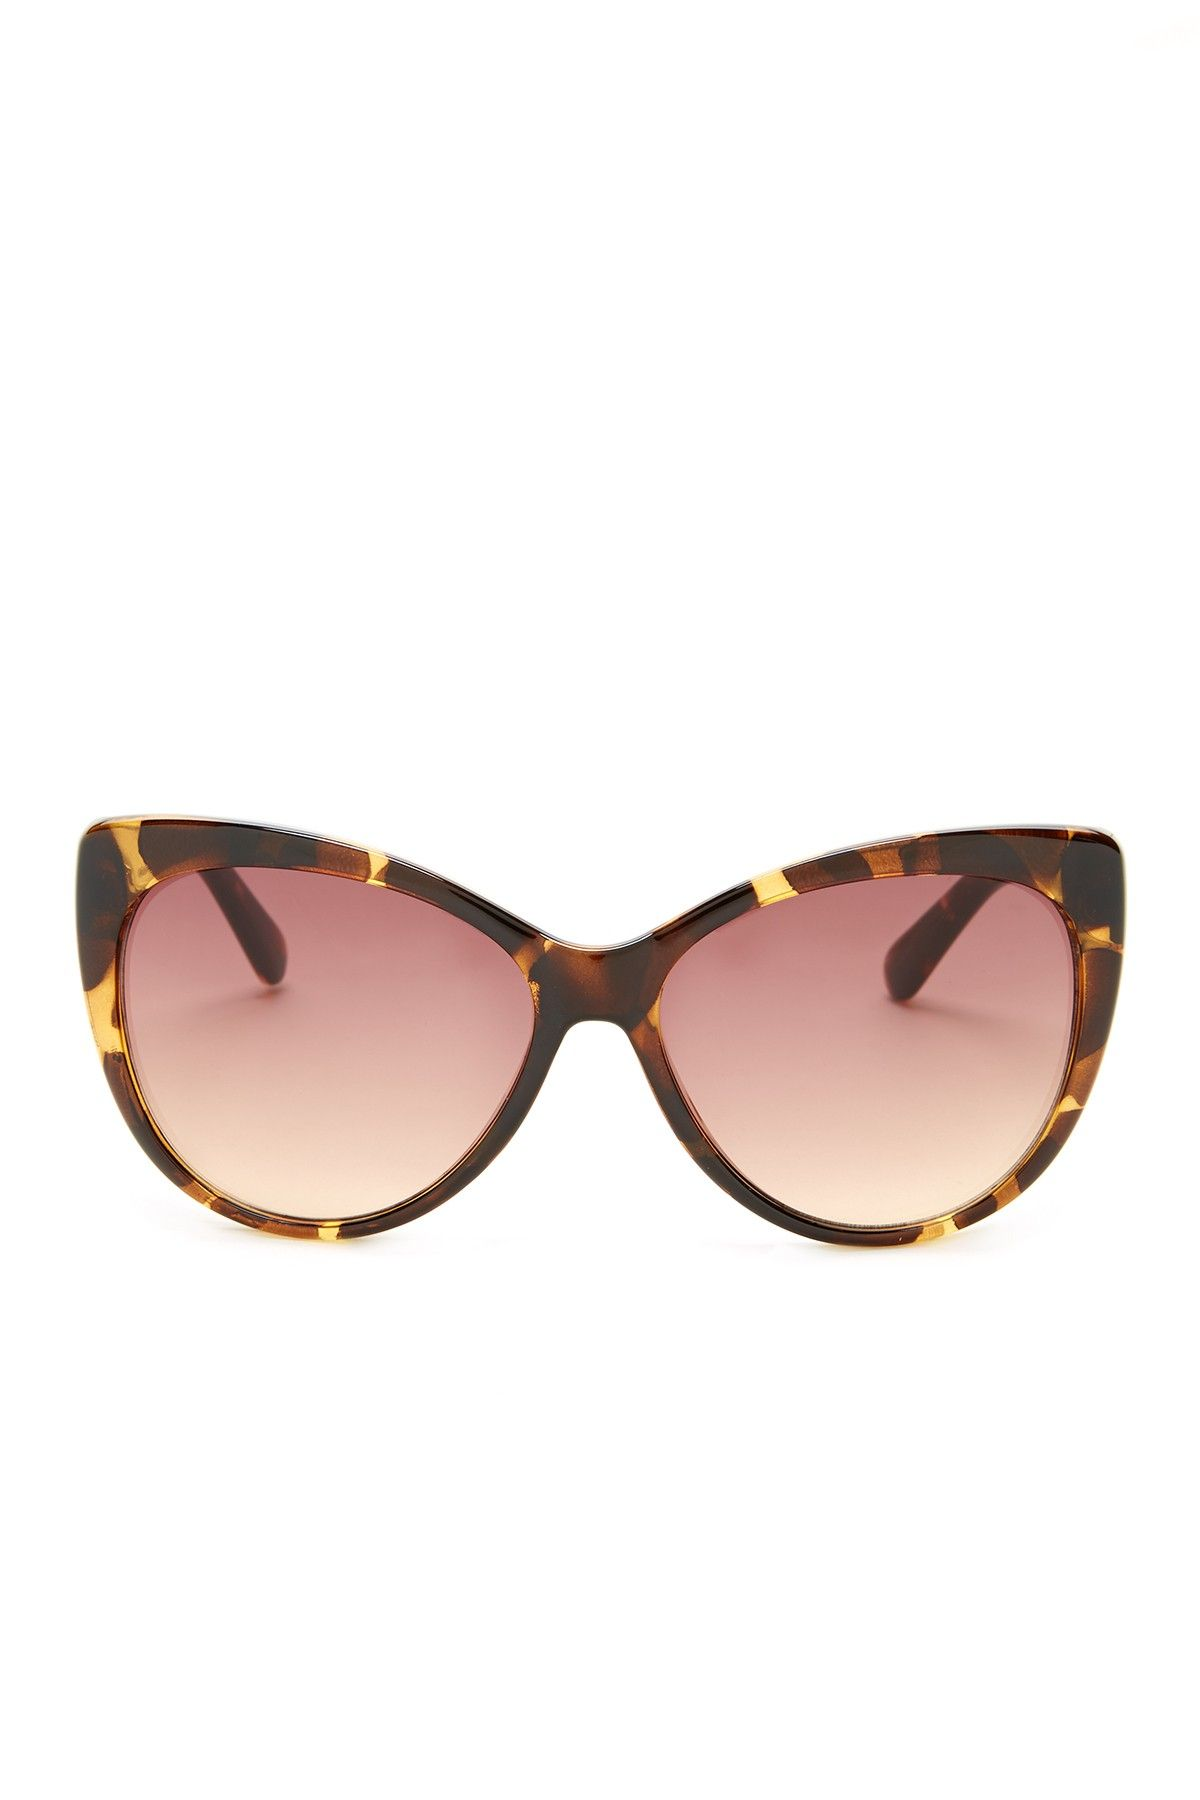 6f60d7aac6 Women s Oversized Sunglasses by Kenneth Cole New York on  nordstrom rack